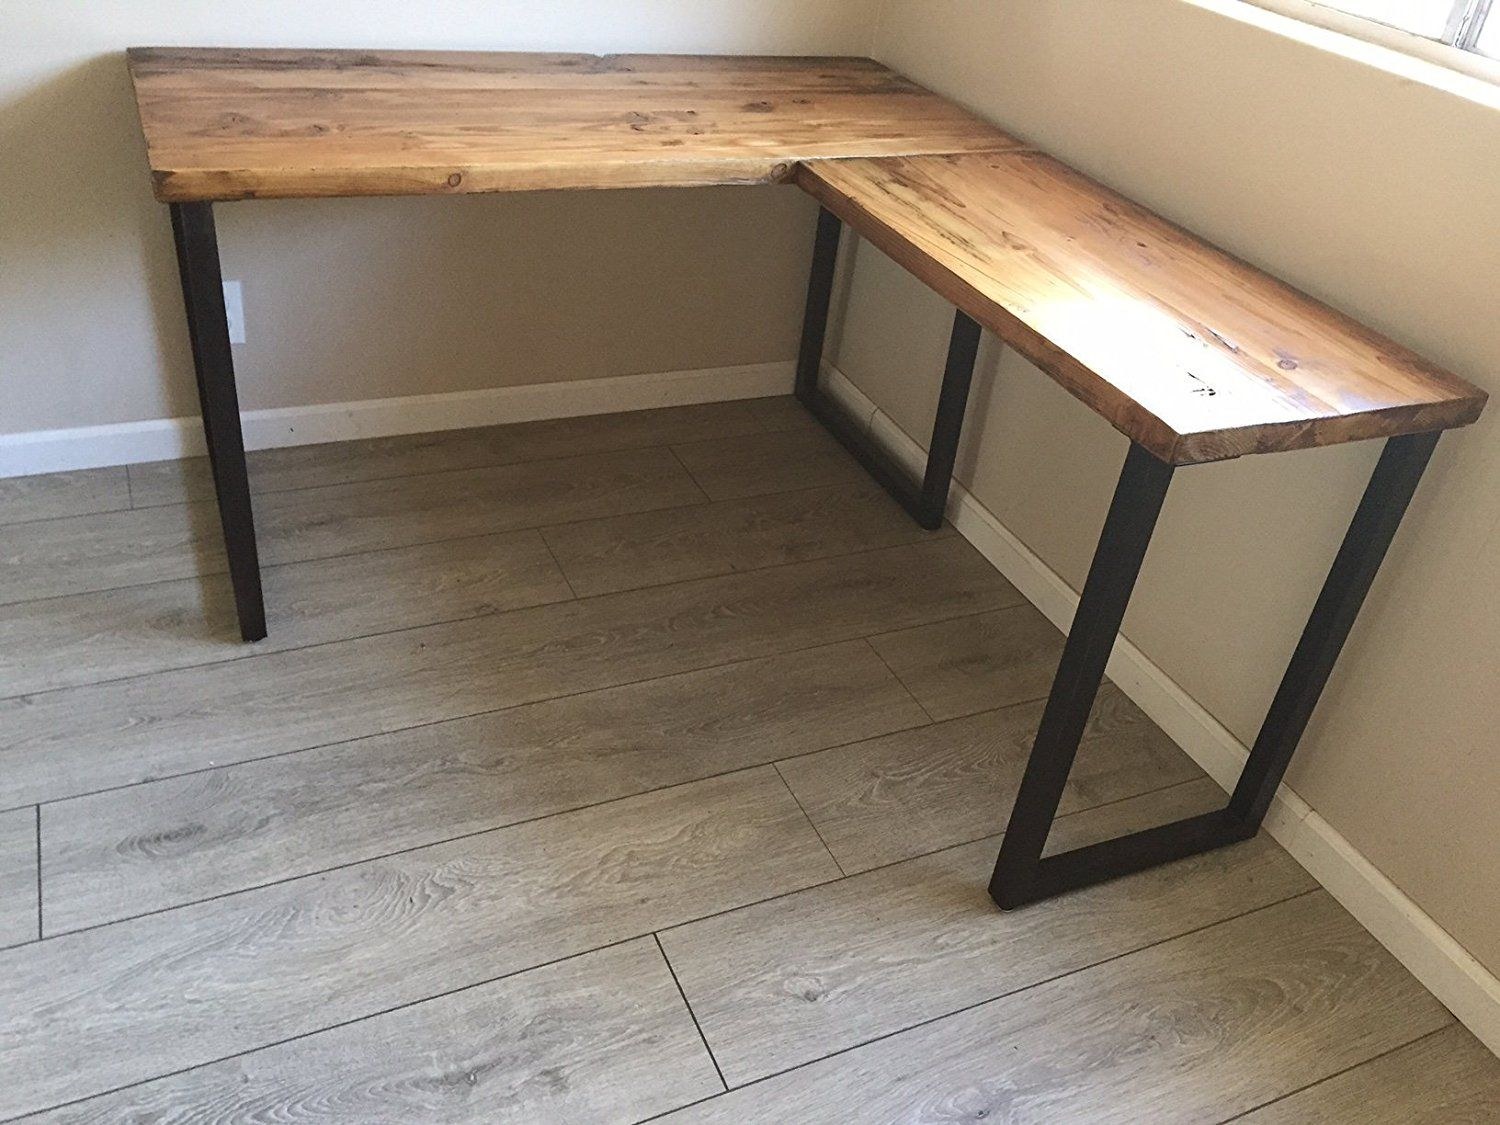 L Shaped Desk Reclaimed Wood With Metal Base Wooden Corner Desk Reclaimed Wood Desk Diy Corner Desk